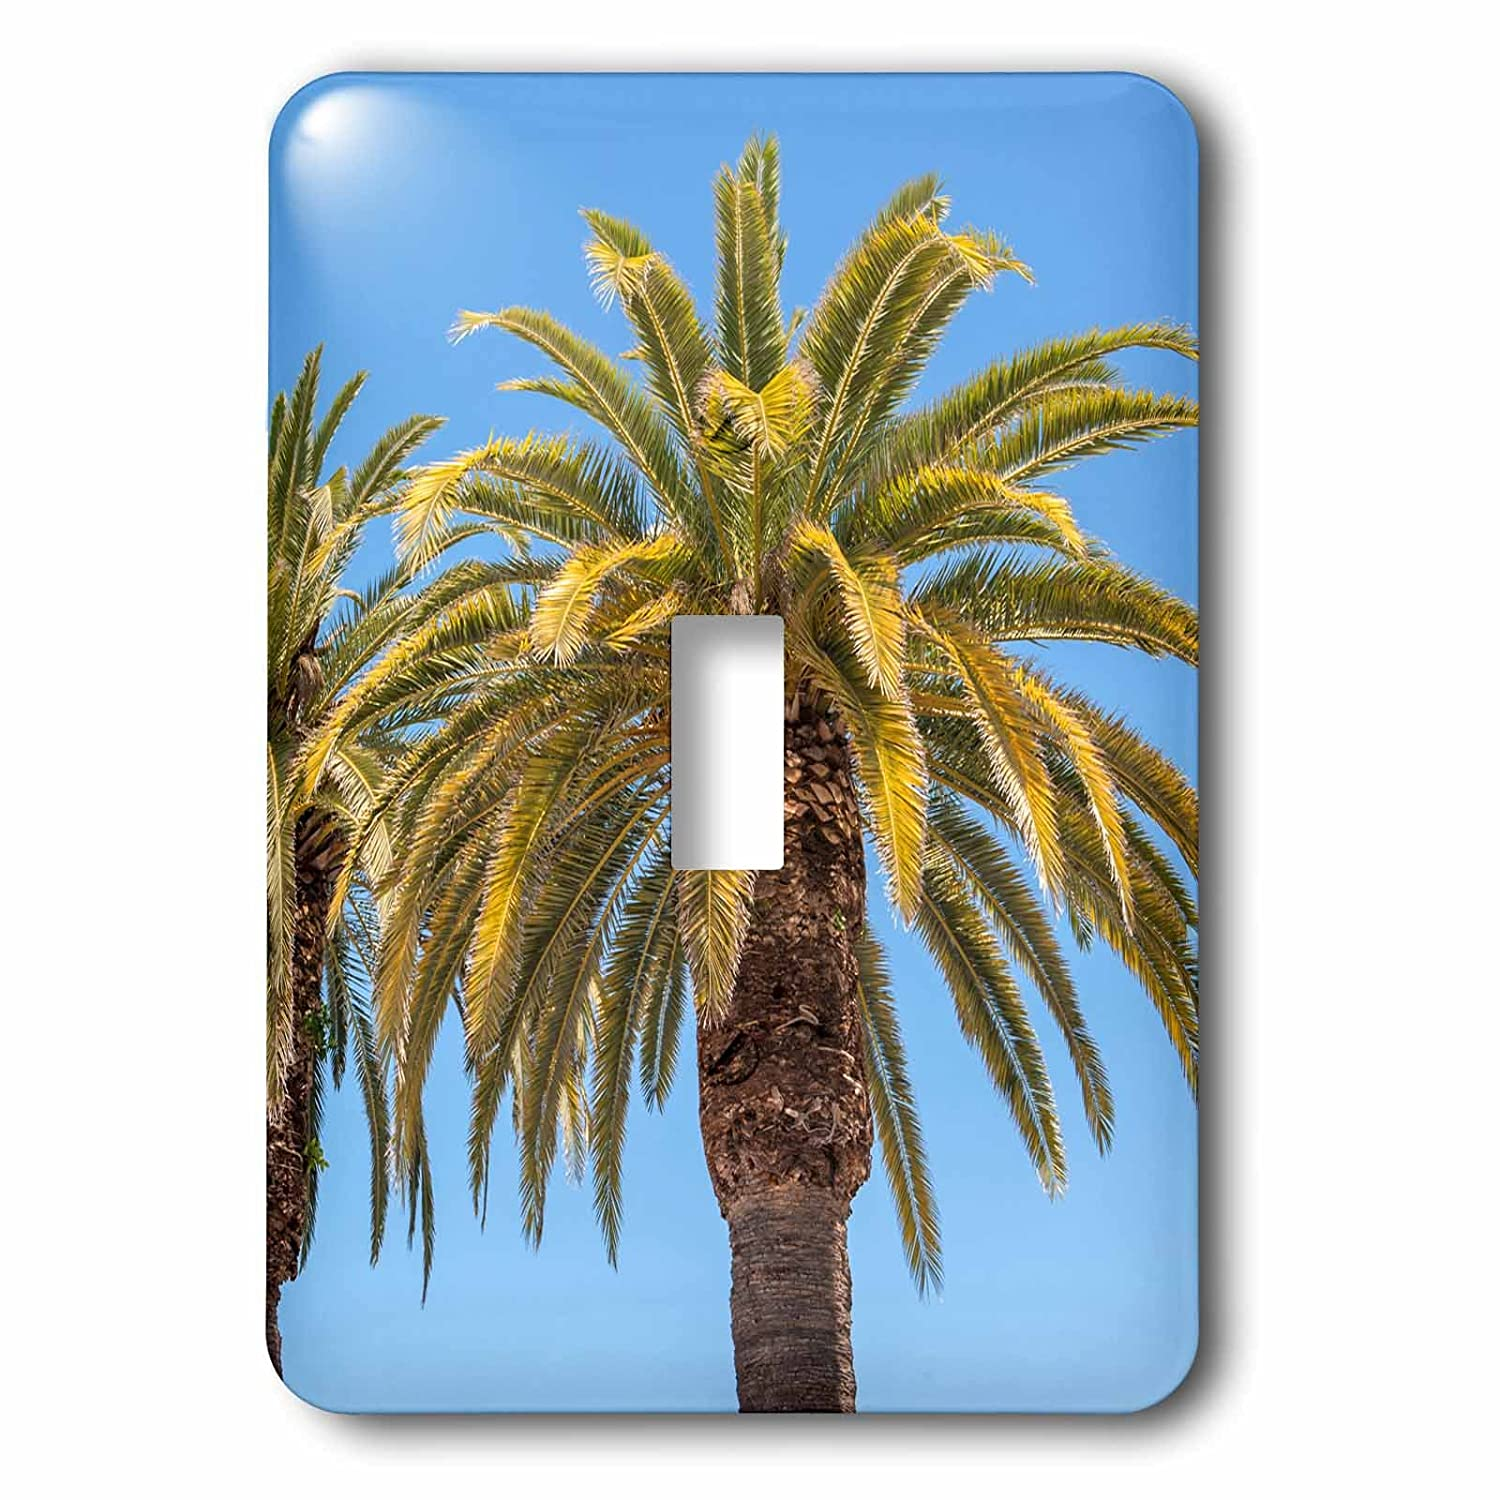 Tierra Verde Florida palm trees Single Toggle Switch 3dRose lsp/_205668/_1 USA